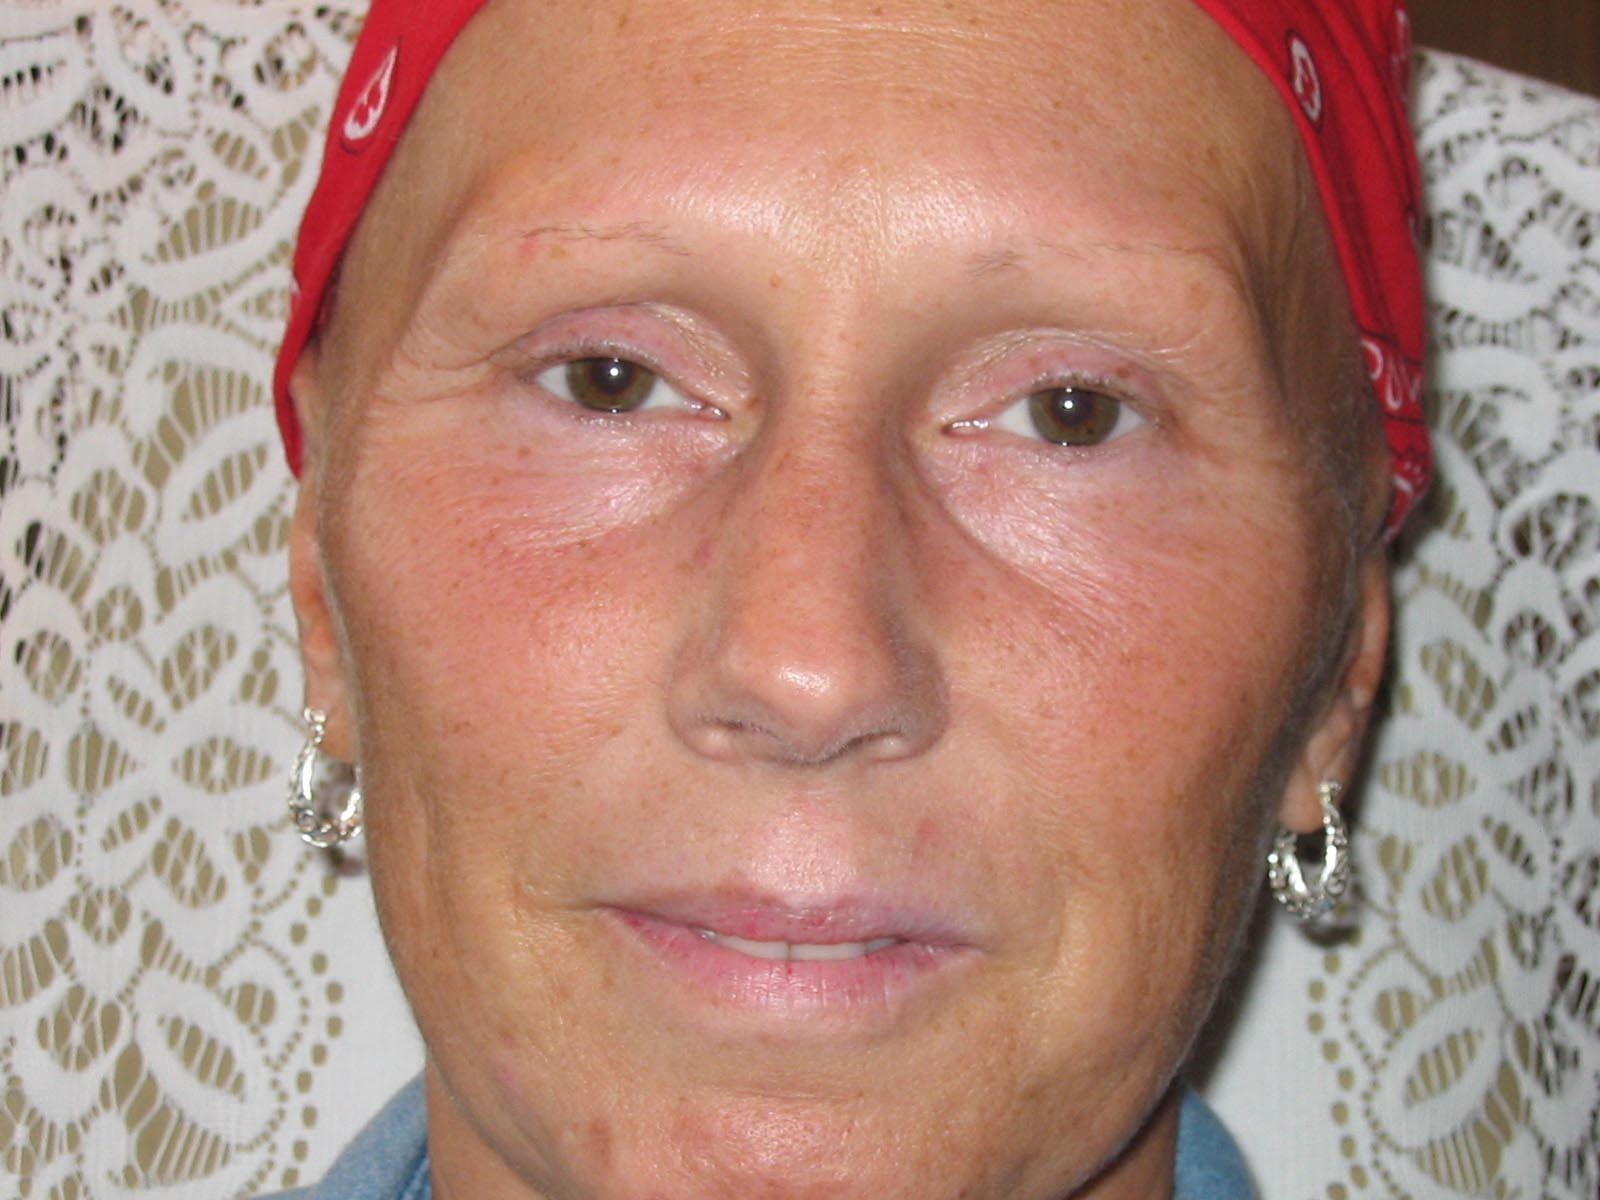 FACES by Marcia Renner BS, LPN, FAAM, CPCP Permanent Cosmetic Makeup image 9